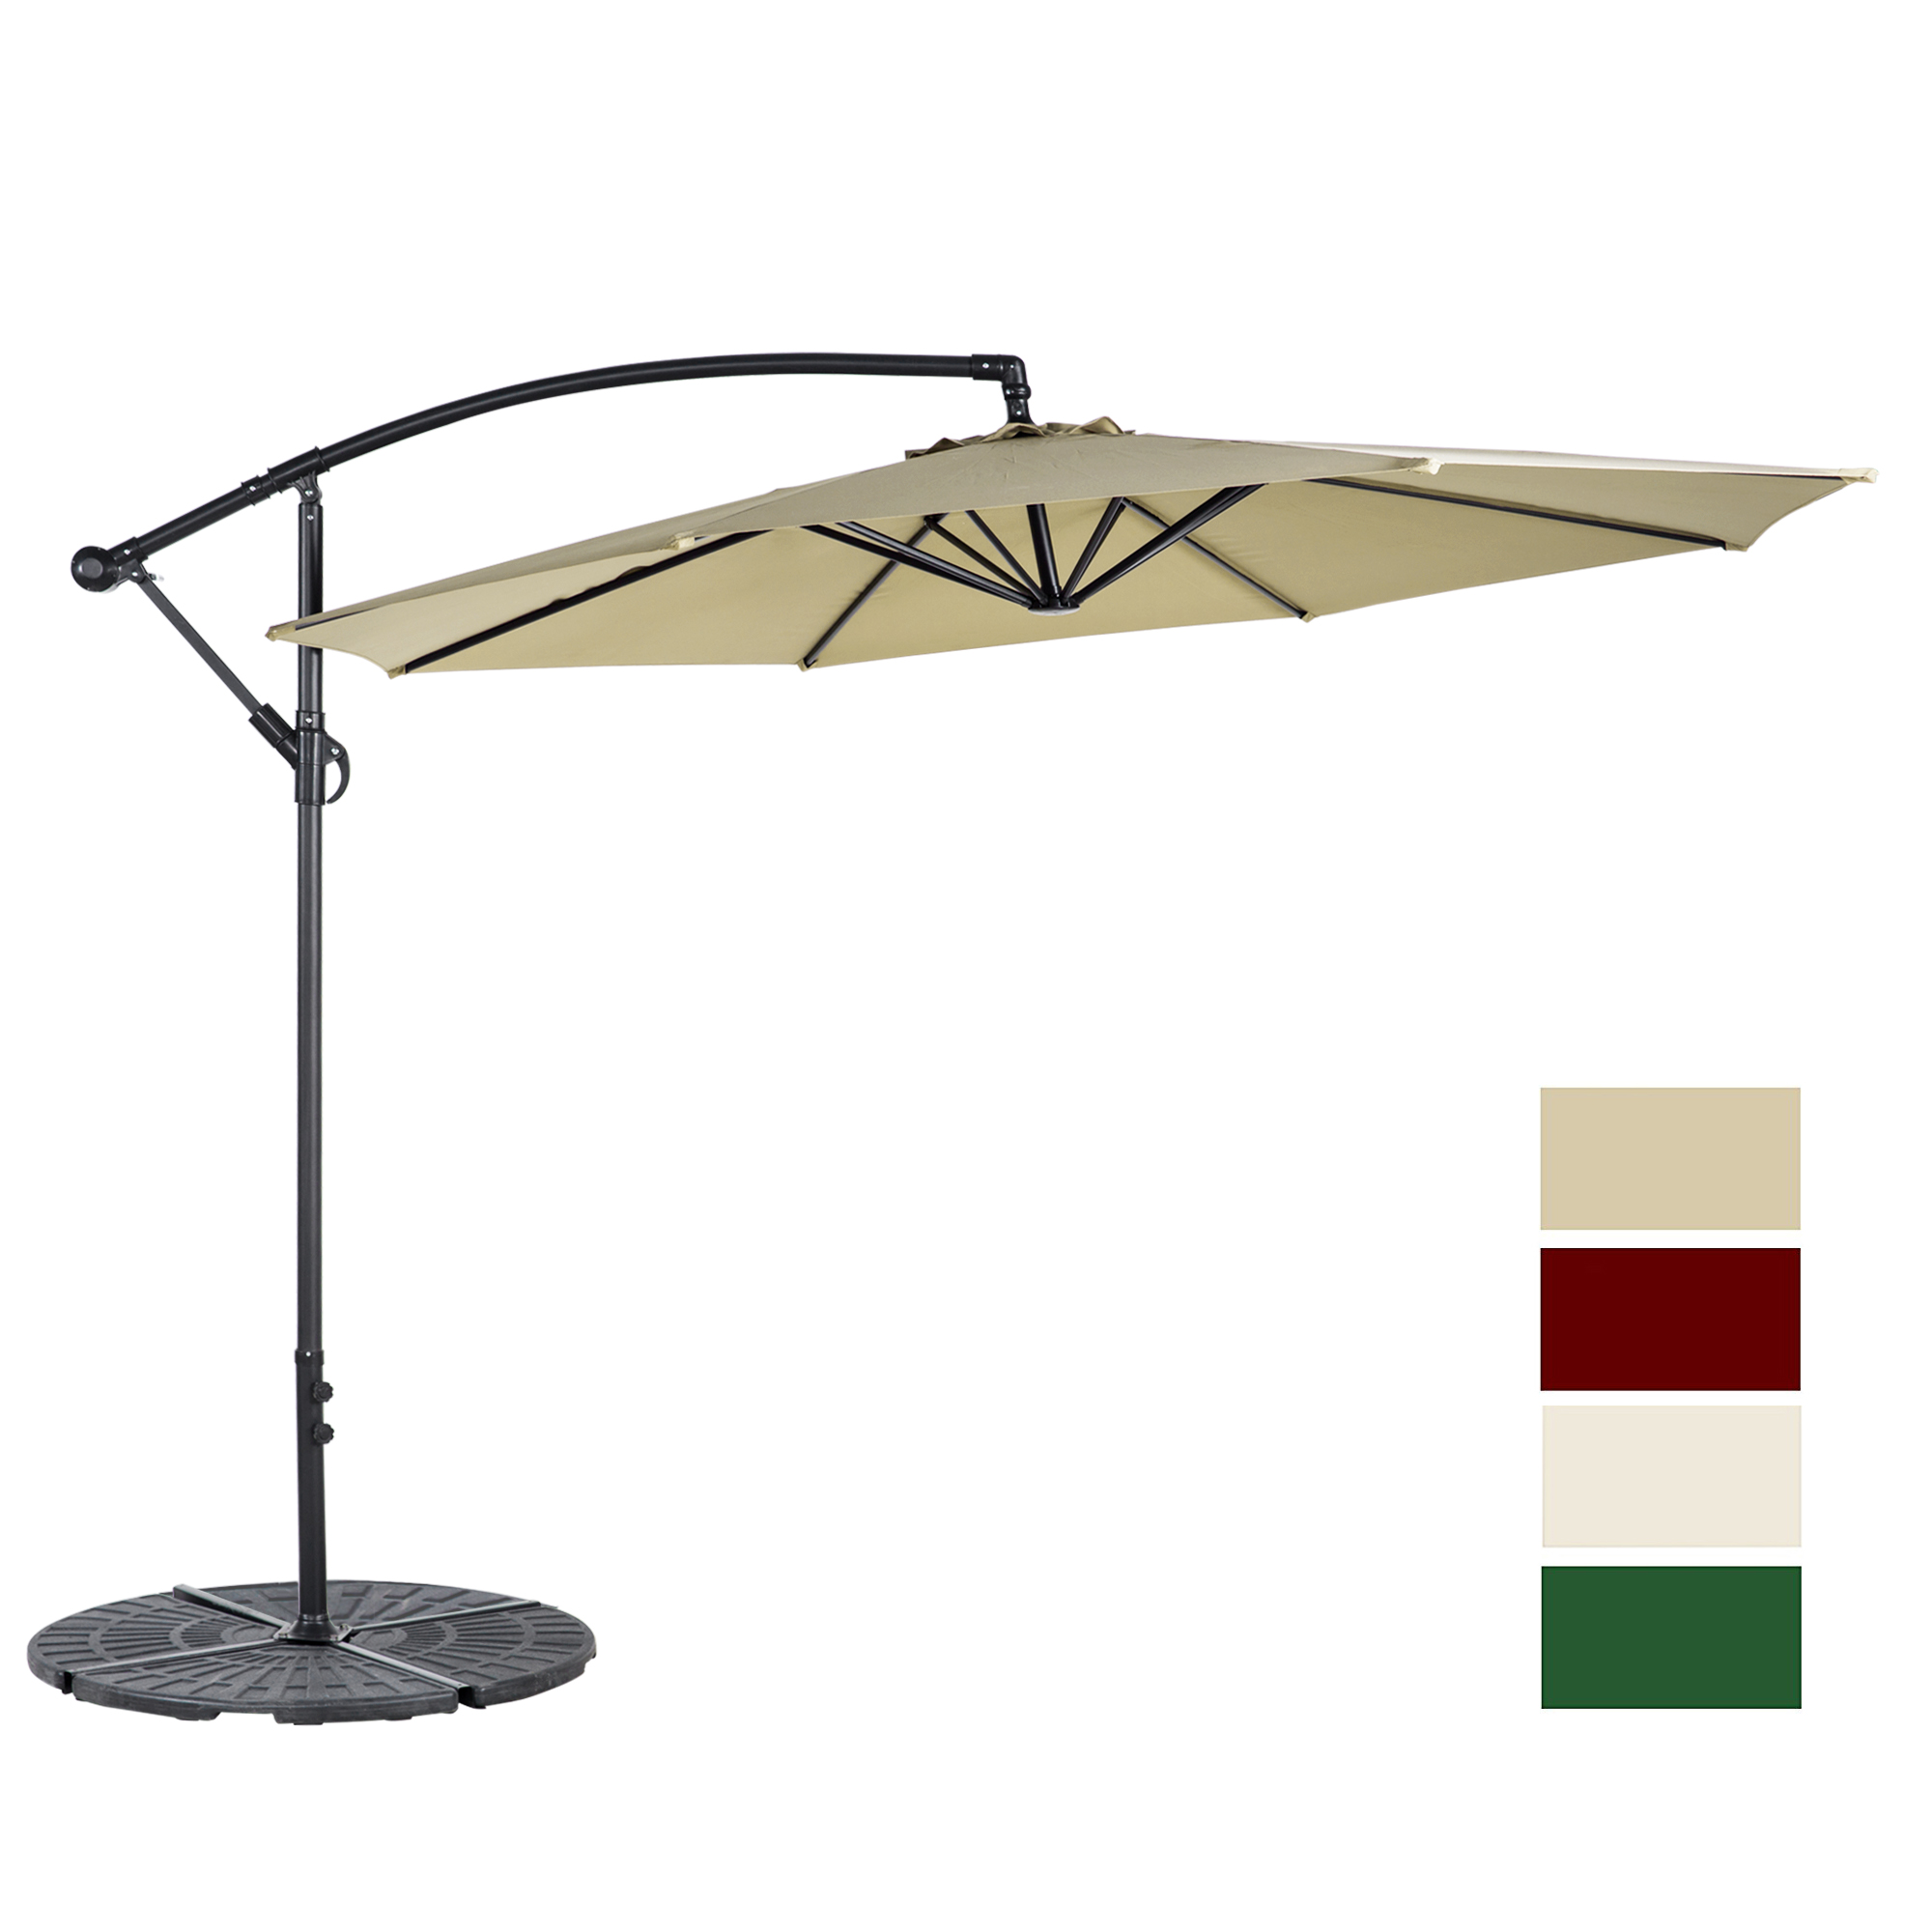 Cloud Mountain 10-ft. Offset Beach Patio Umbrella by Cloud Mountain